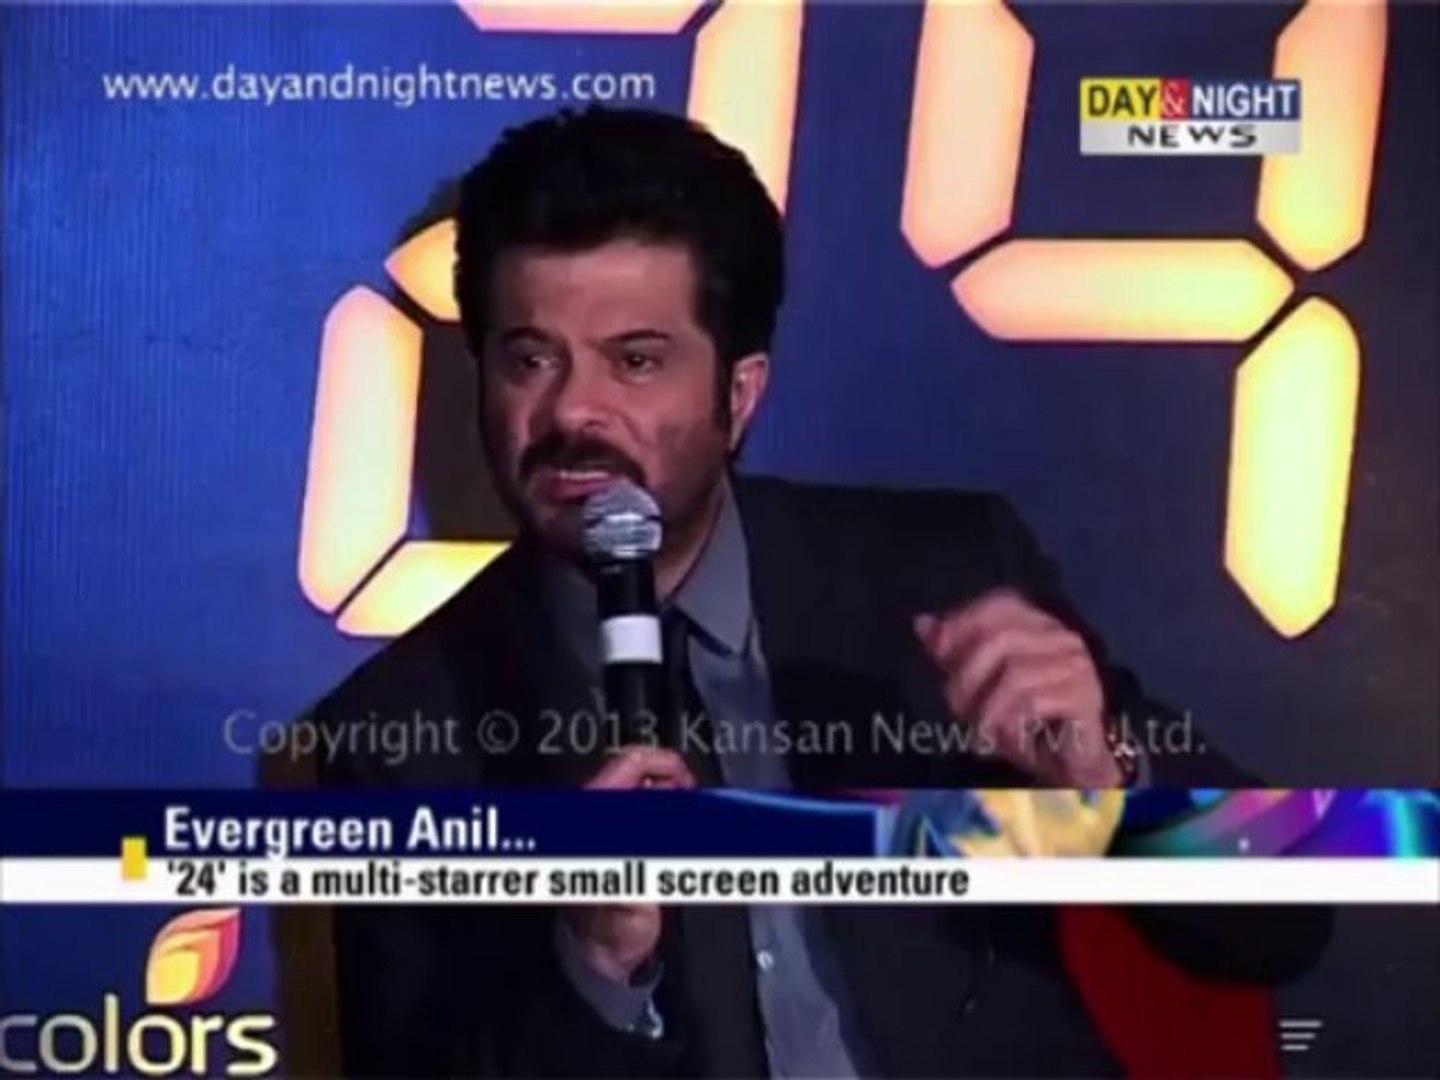 Actor Anil Kapoor visit to Chandigarh | Promote 24 | Interview | Latest India Entertainment News